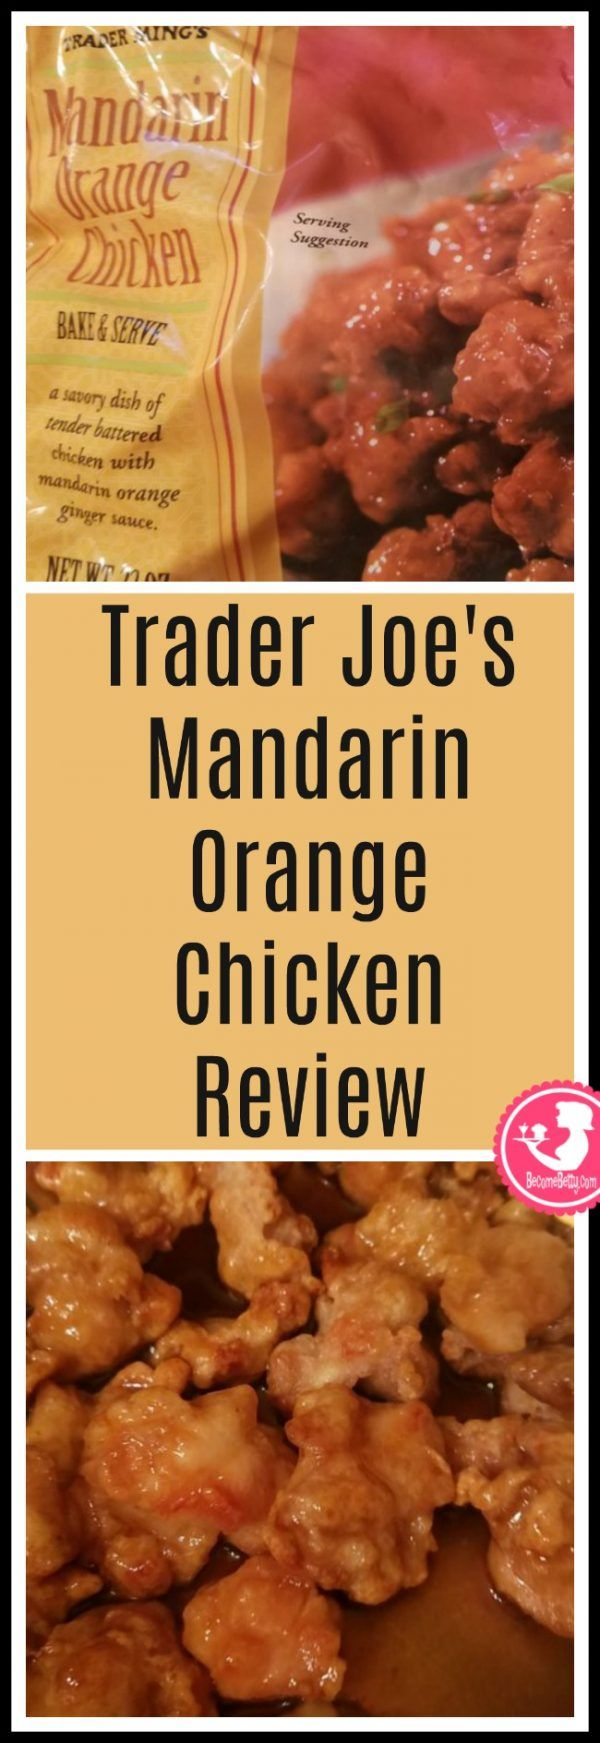 Trader Joe's Mandarin Orange Chicken review. Want to know if this is something worth putting on your shopping list from Trader Joe's? All pins link to BecomeBetty.com where you can find reviews, pictures, thoughts, calorie counts, nutritional information, how to prepare, allergy information, price, and how to prepare each product.